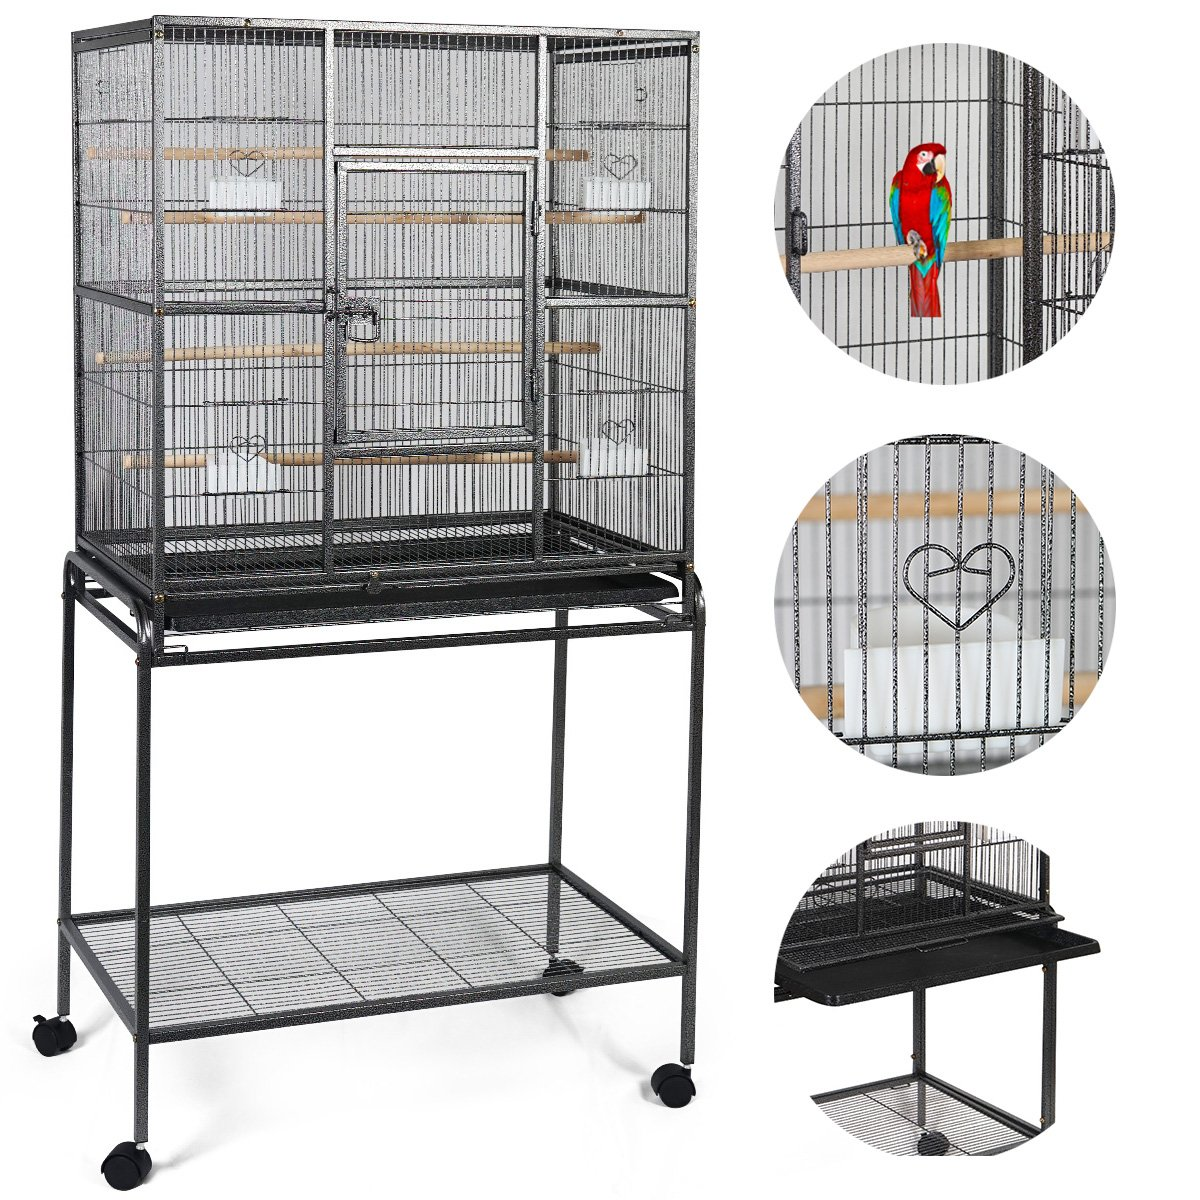 PETSJOY 61'' Large Bird Cage Parrot Cage for African Grey Senegal Parrots Cockatiels Sun Parakeets Green Cheeked Conures Roofed Top Play Pet Bird Cage with Perch and Stand, 2 Doors 2 Feeders by PETSJOY